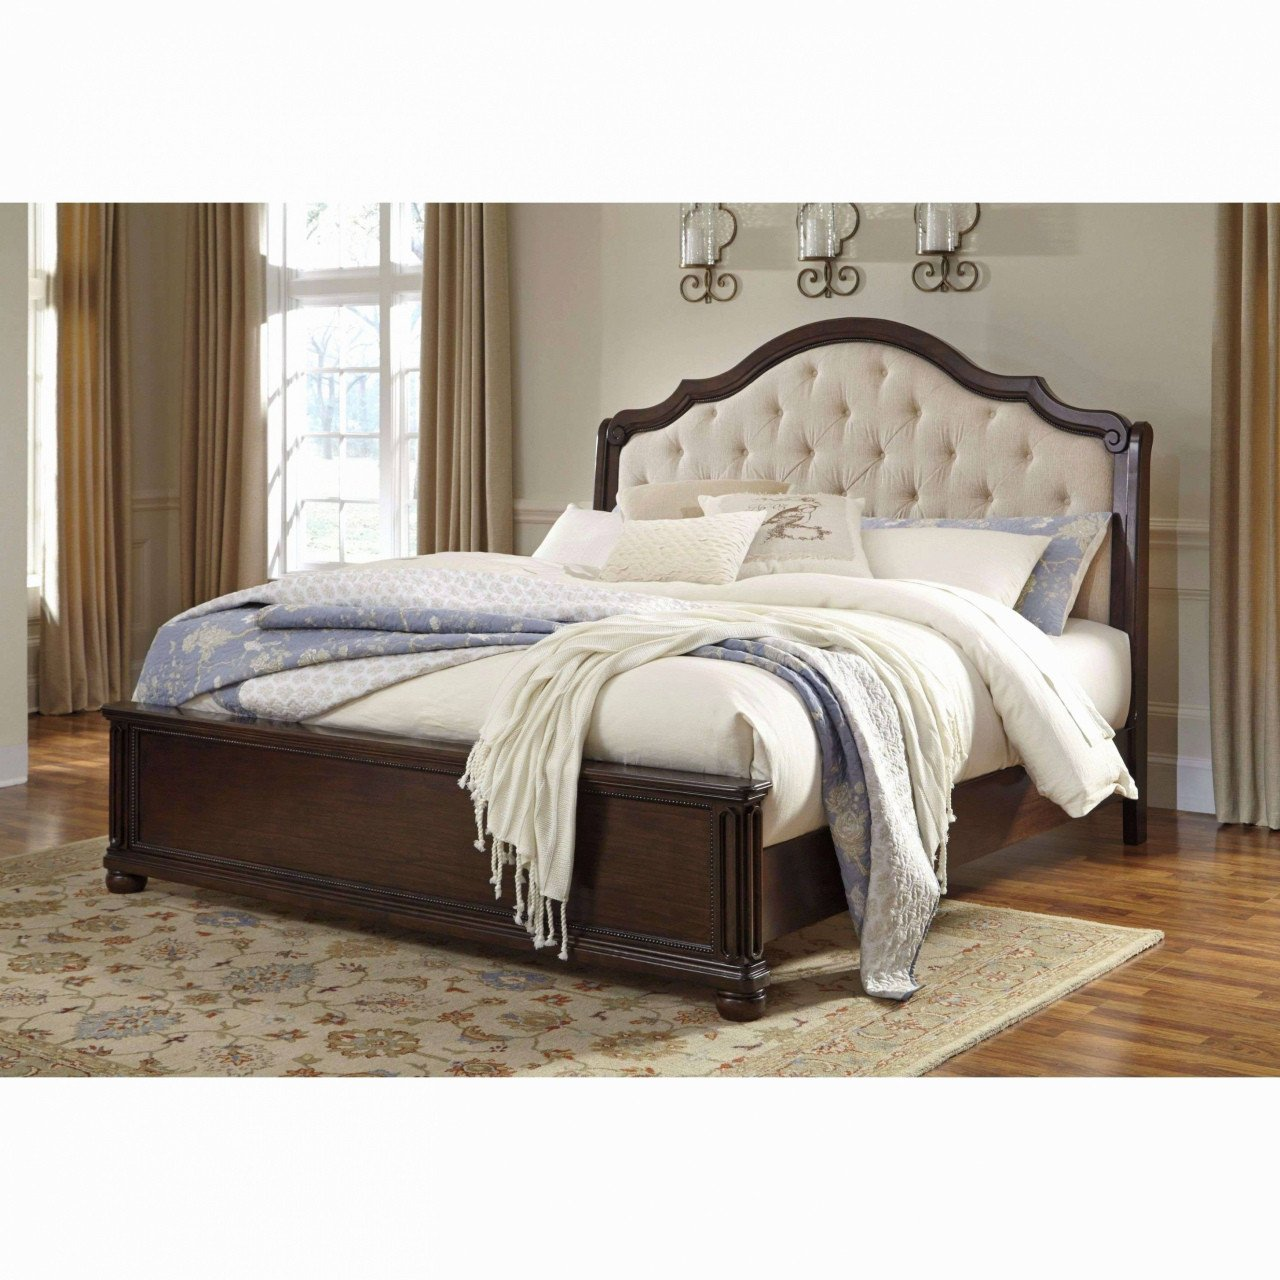 Wrought Iron Bedroom Set Inspirational White Wrought Iron Bed — Procura Home Blog